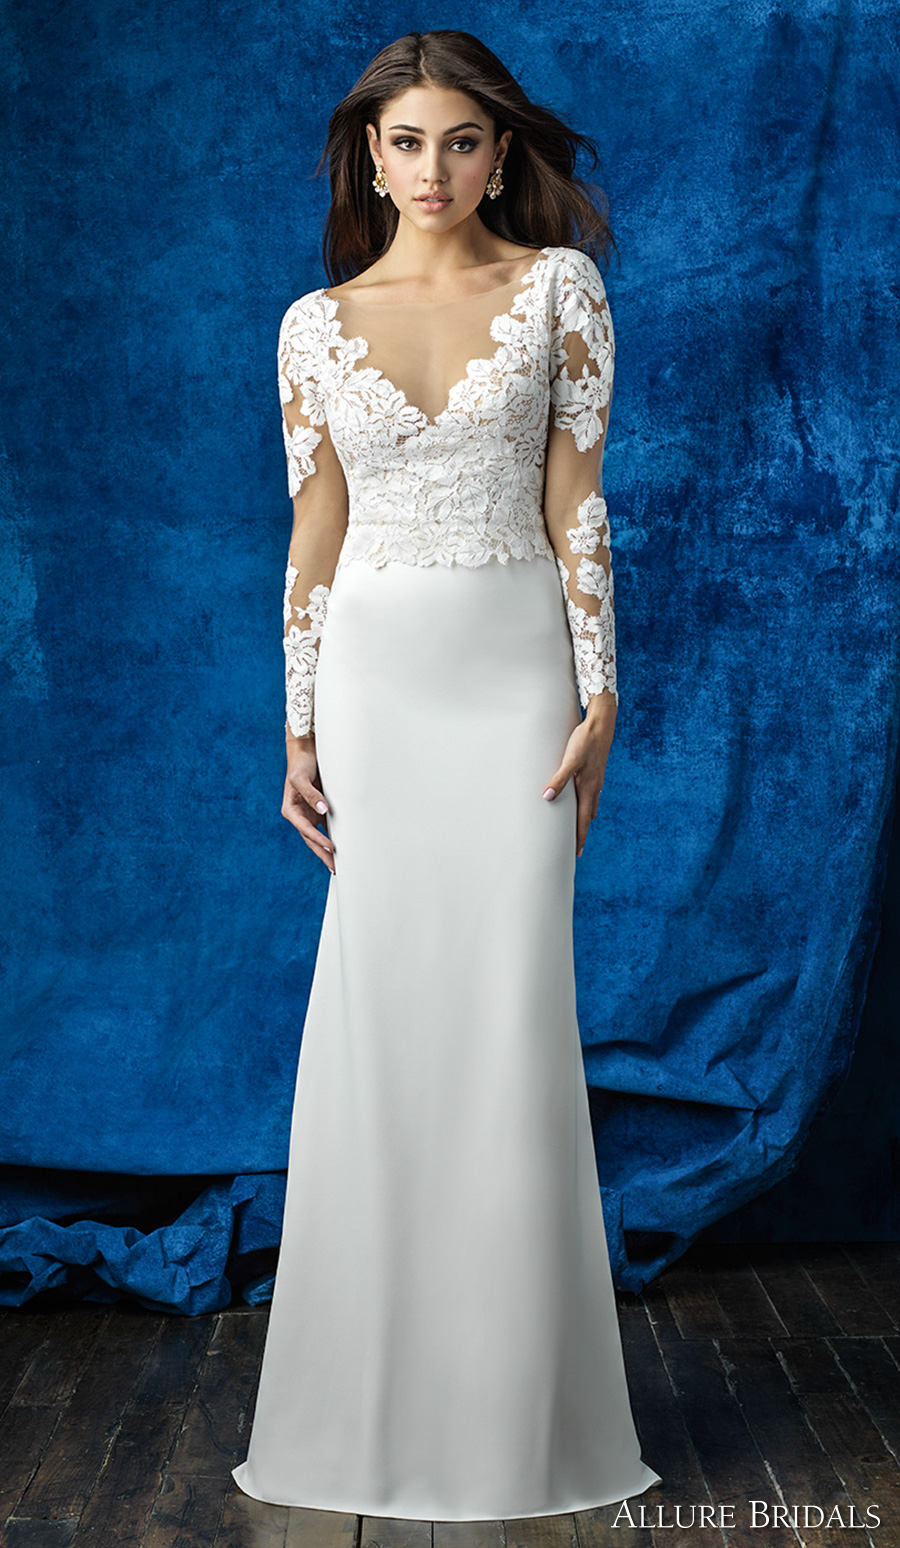 Allure Bridals Mix and Match Collection — Create Gorgeous ...